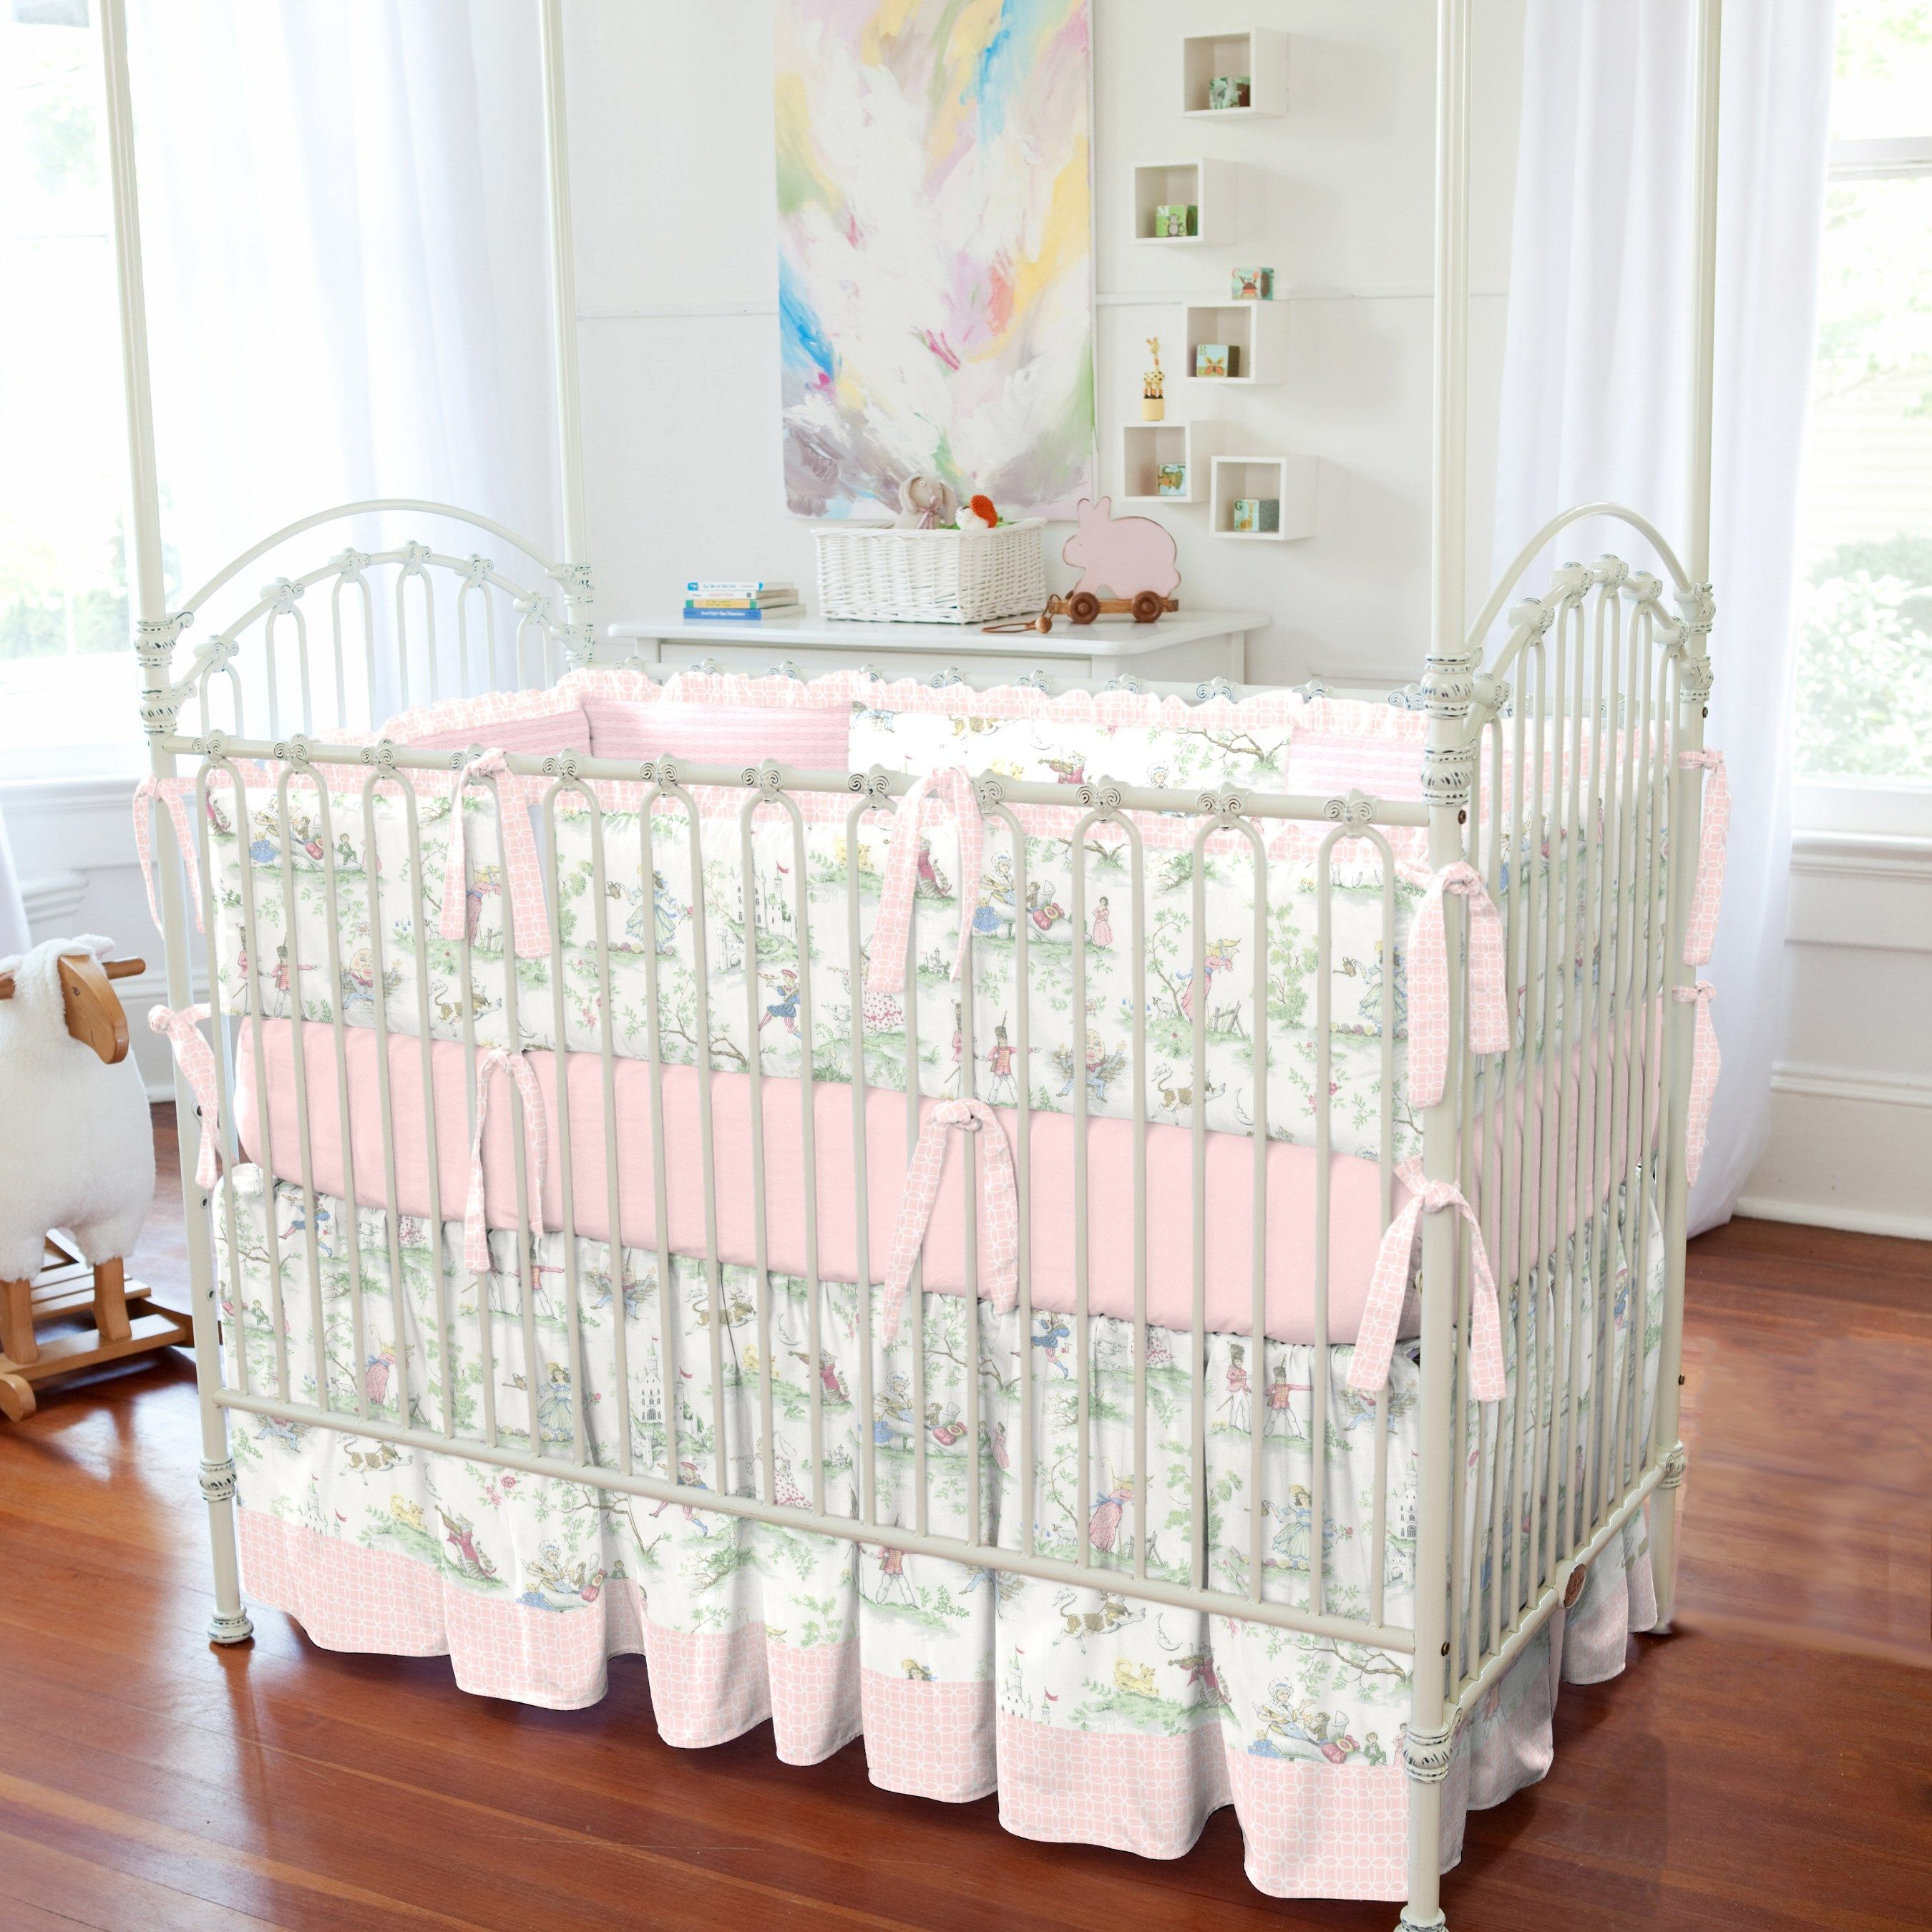 Crib Bumper In Pink Over The Moon Toile By Carousel Designs.